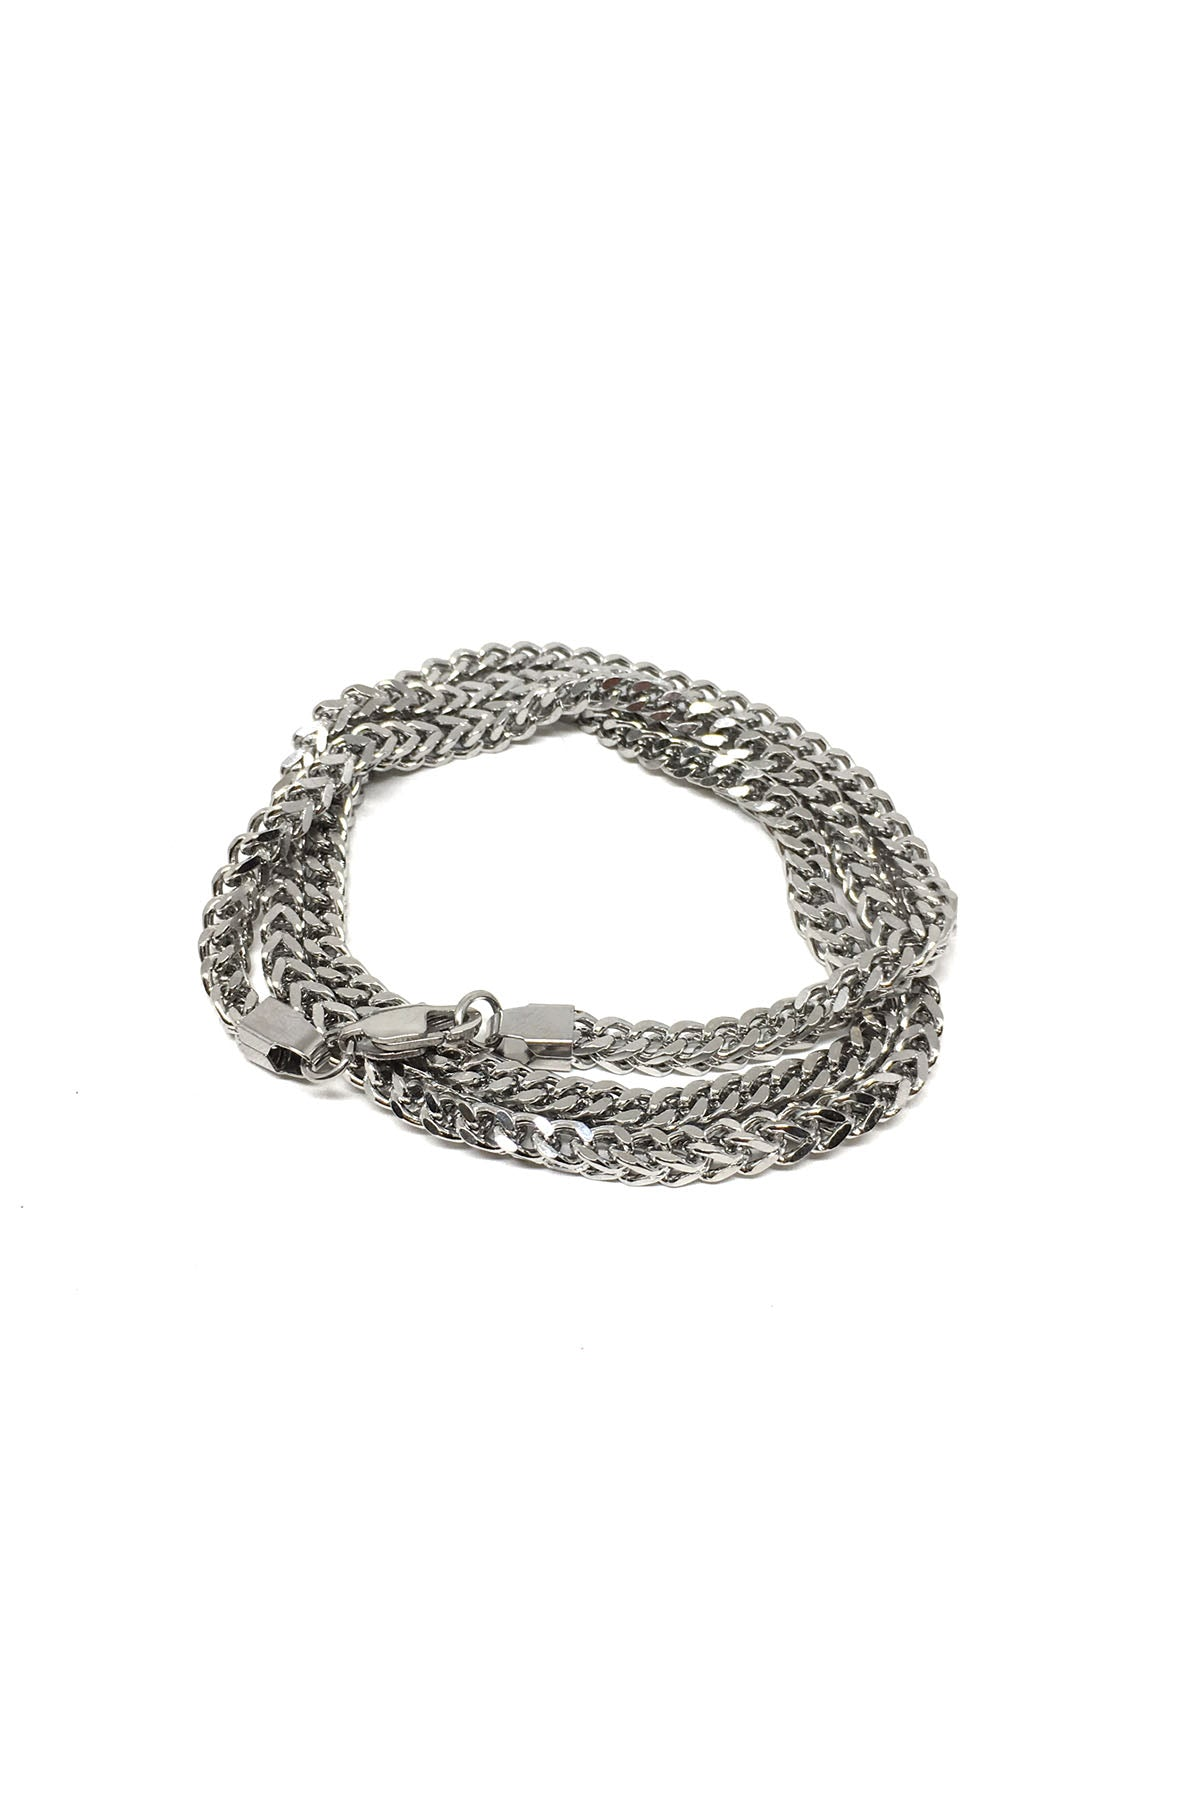 Triple Wrap Silver Franco Chain Bracelet